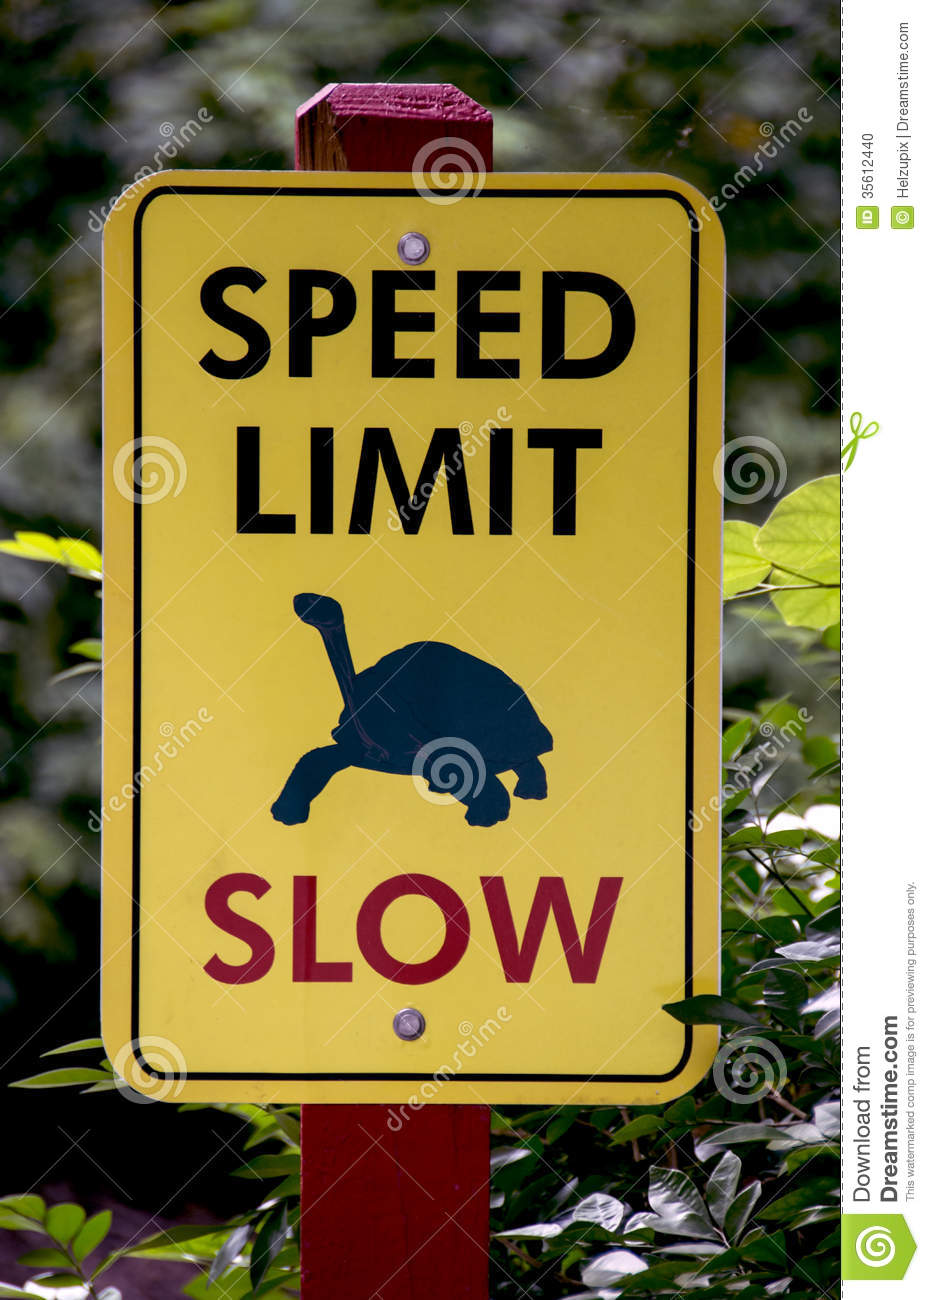 Slow Speed Limit Sign Stock Photo.